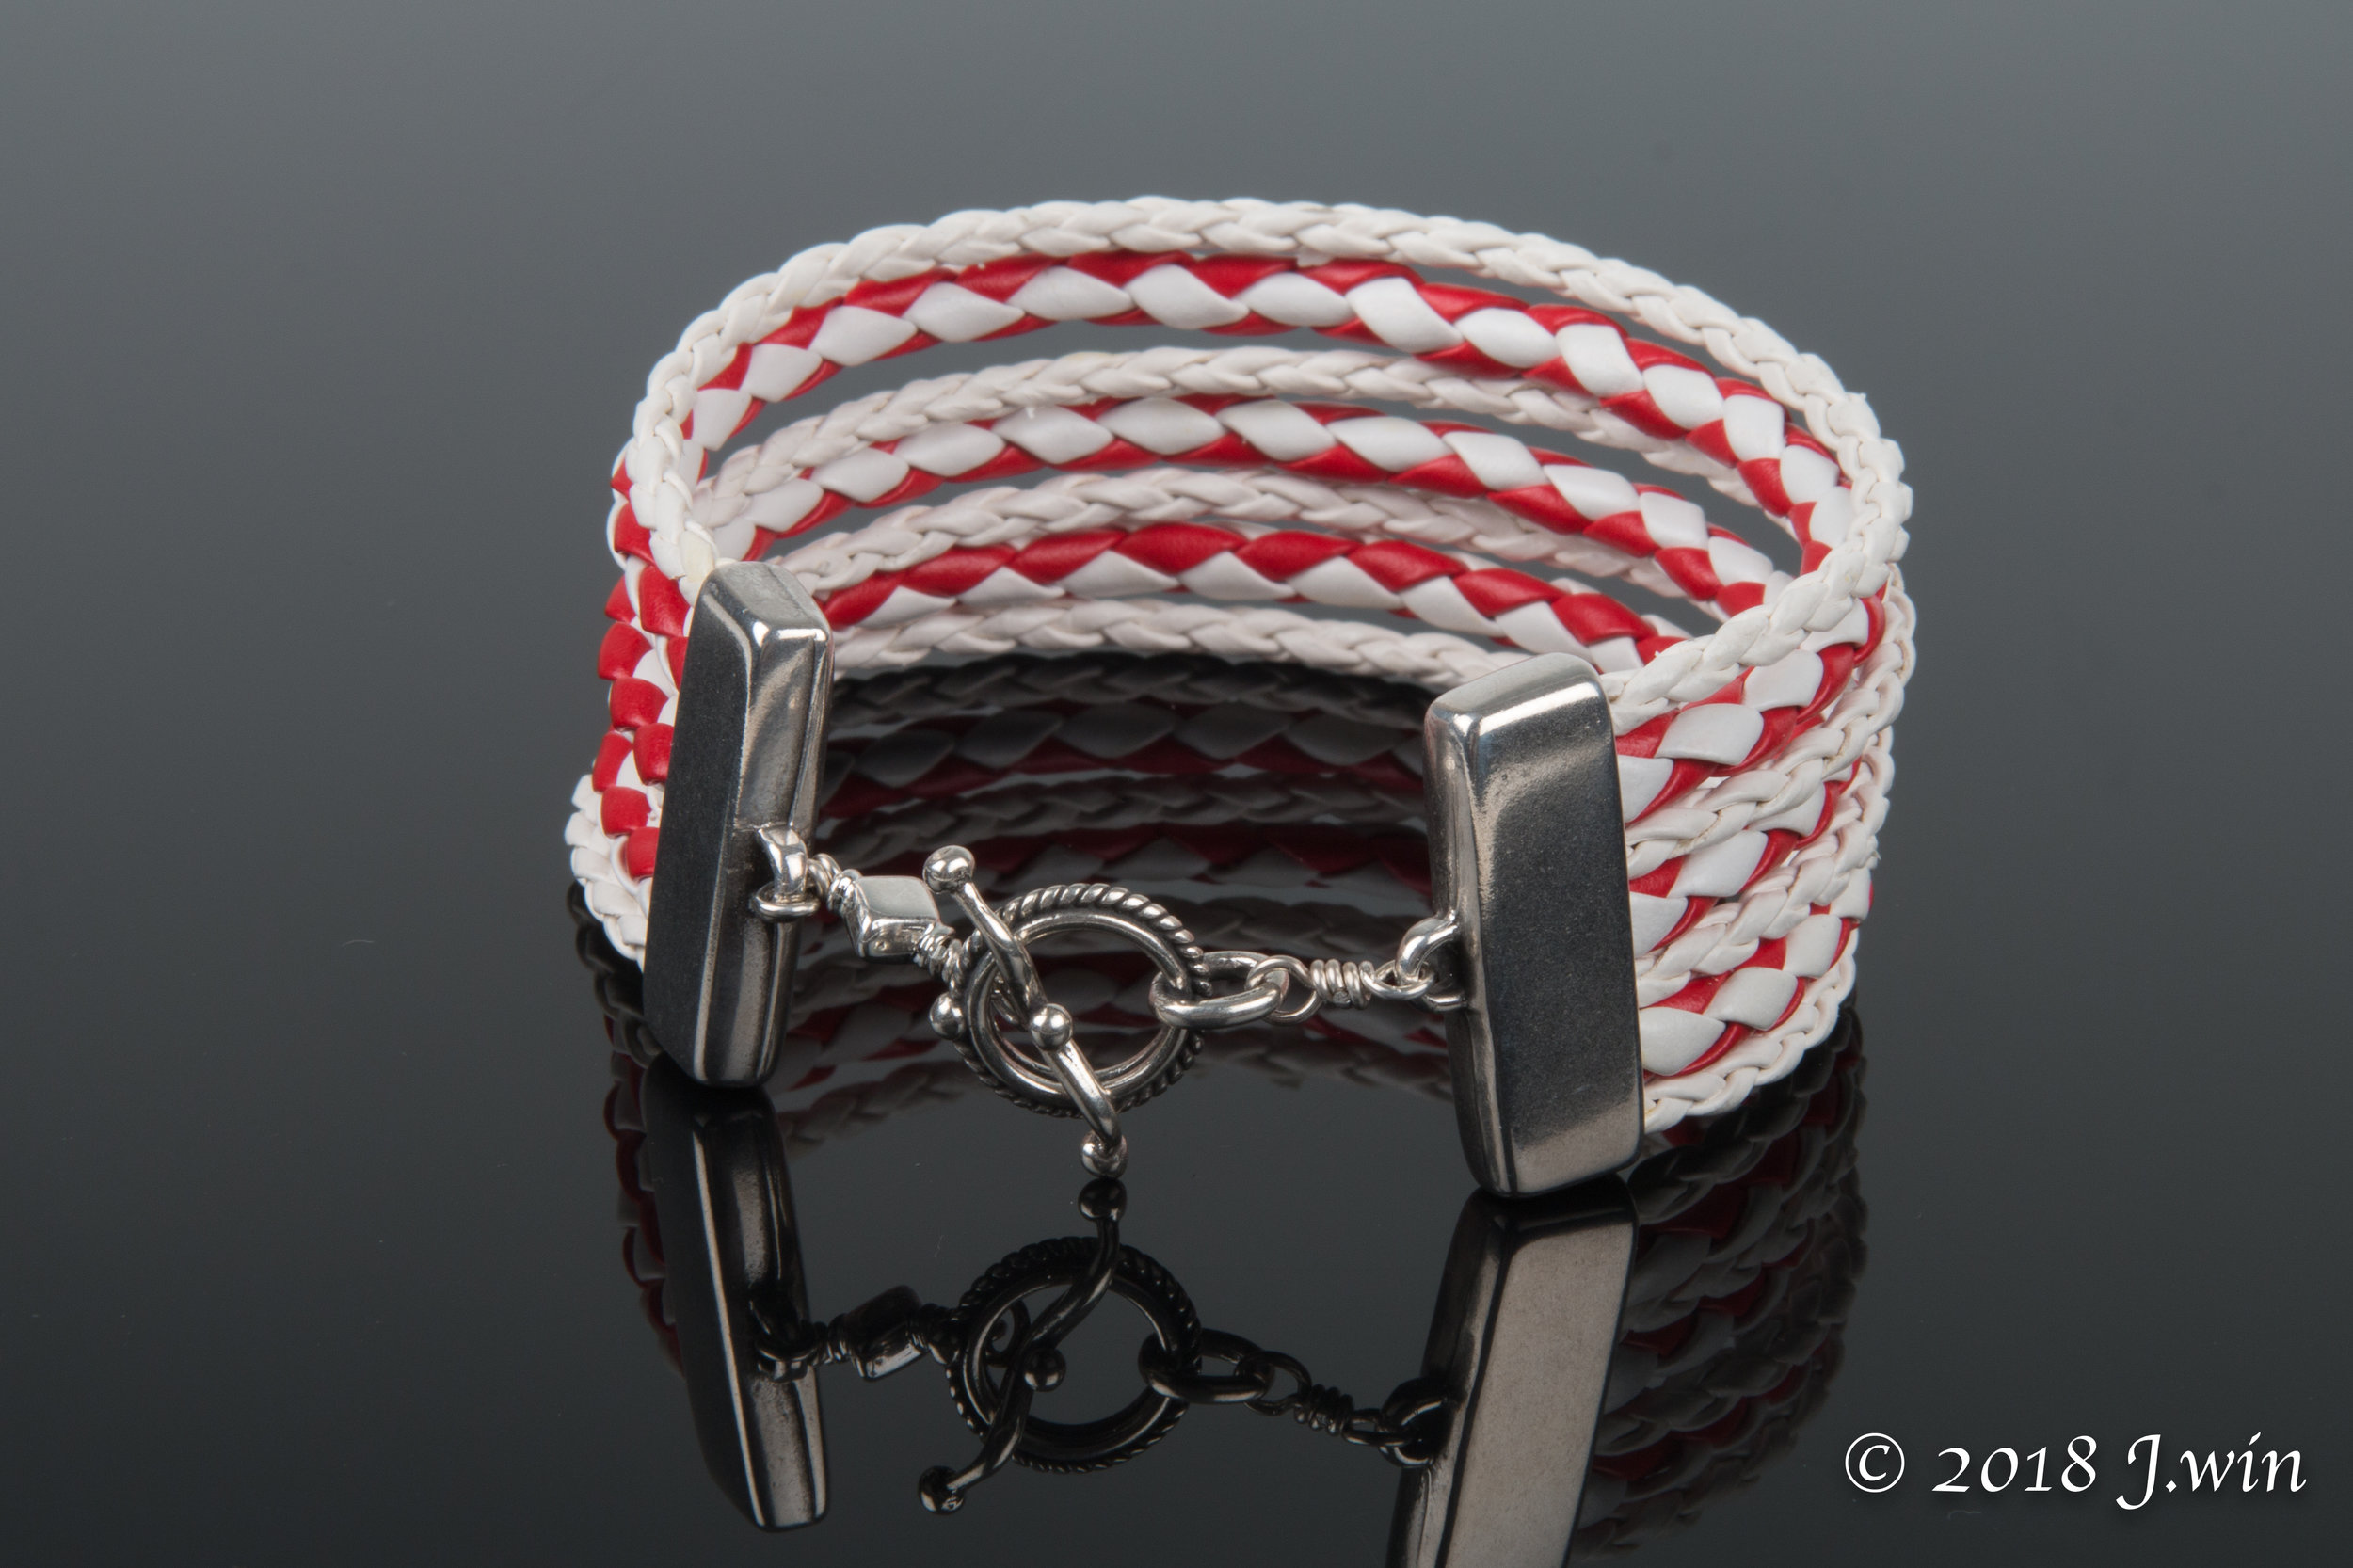 Red and white braided bracelet